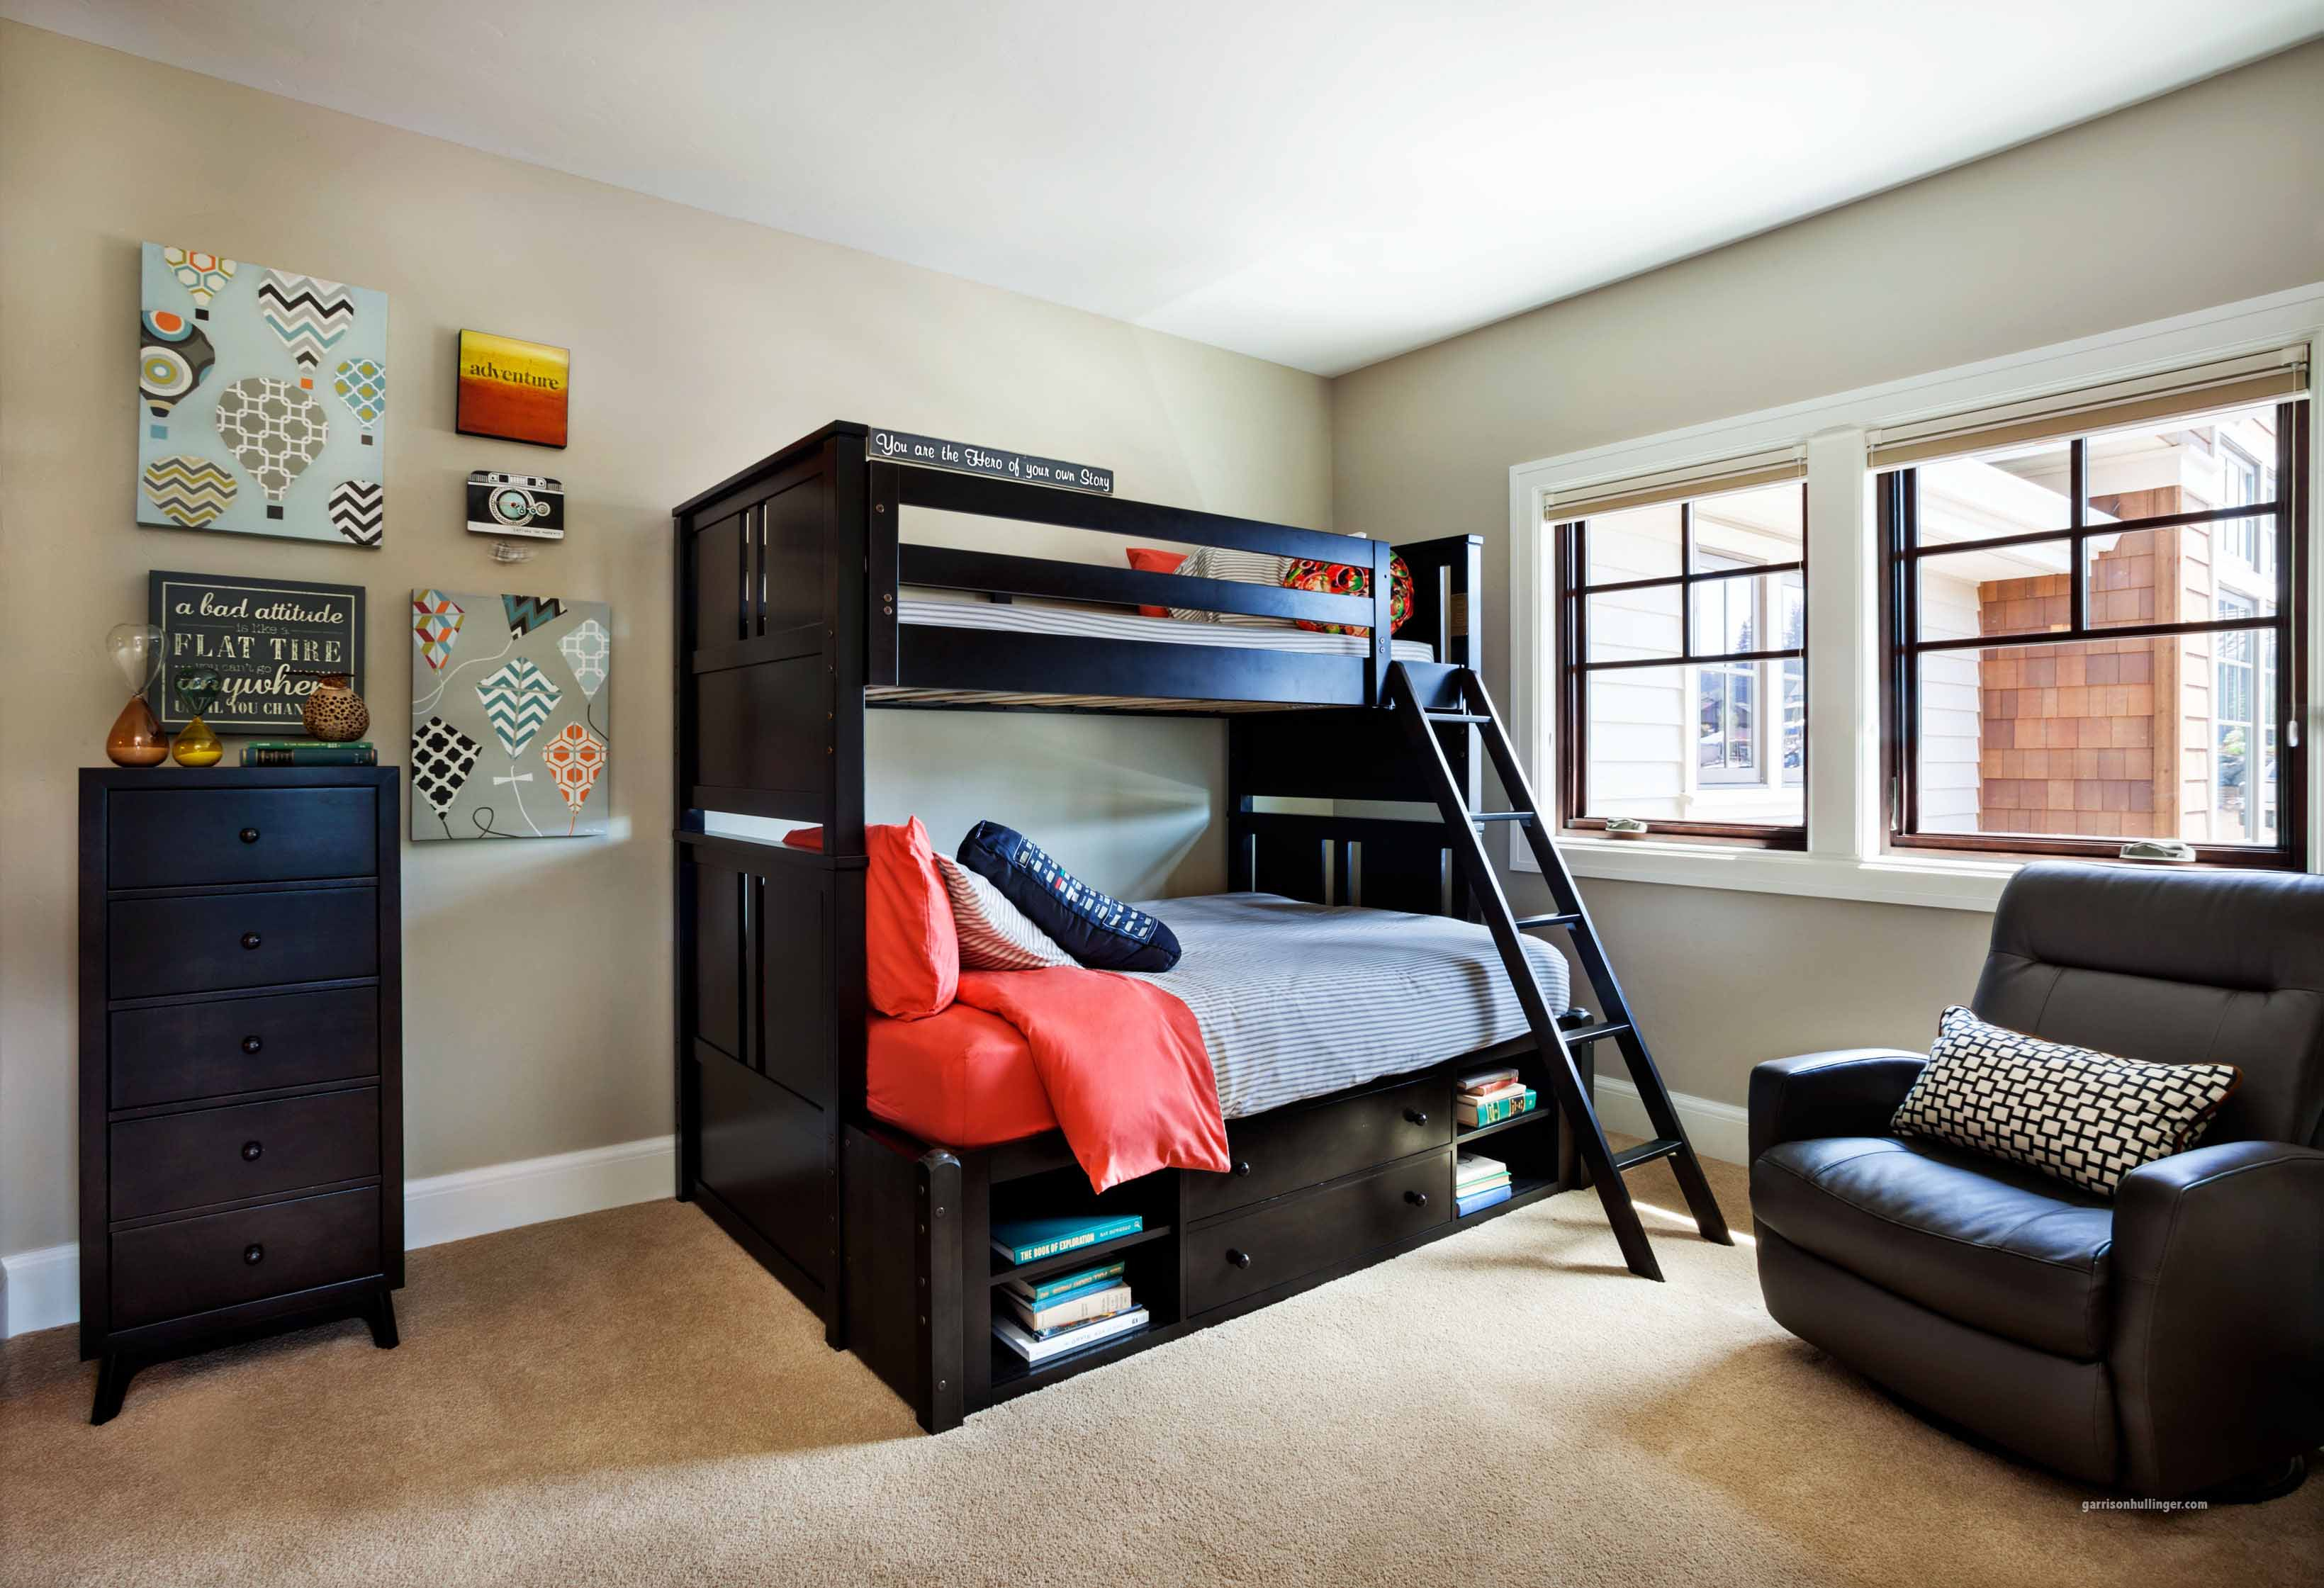 Boys apartment bedroom: bedroom storage decorating ideas masculin ...